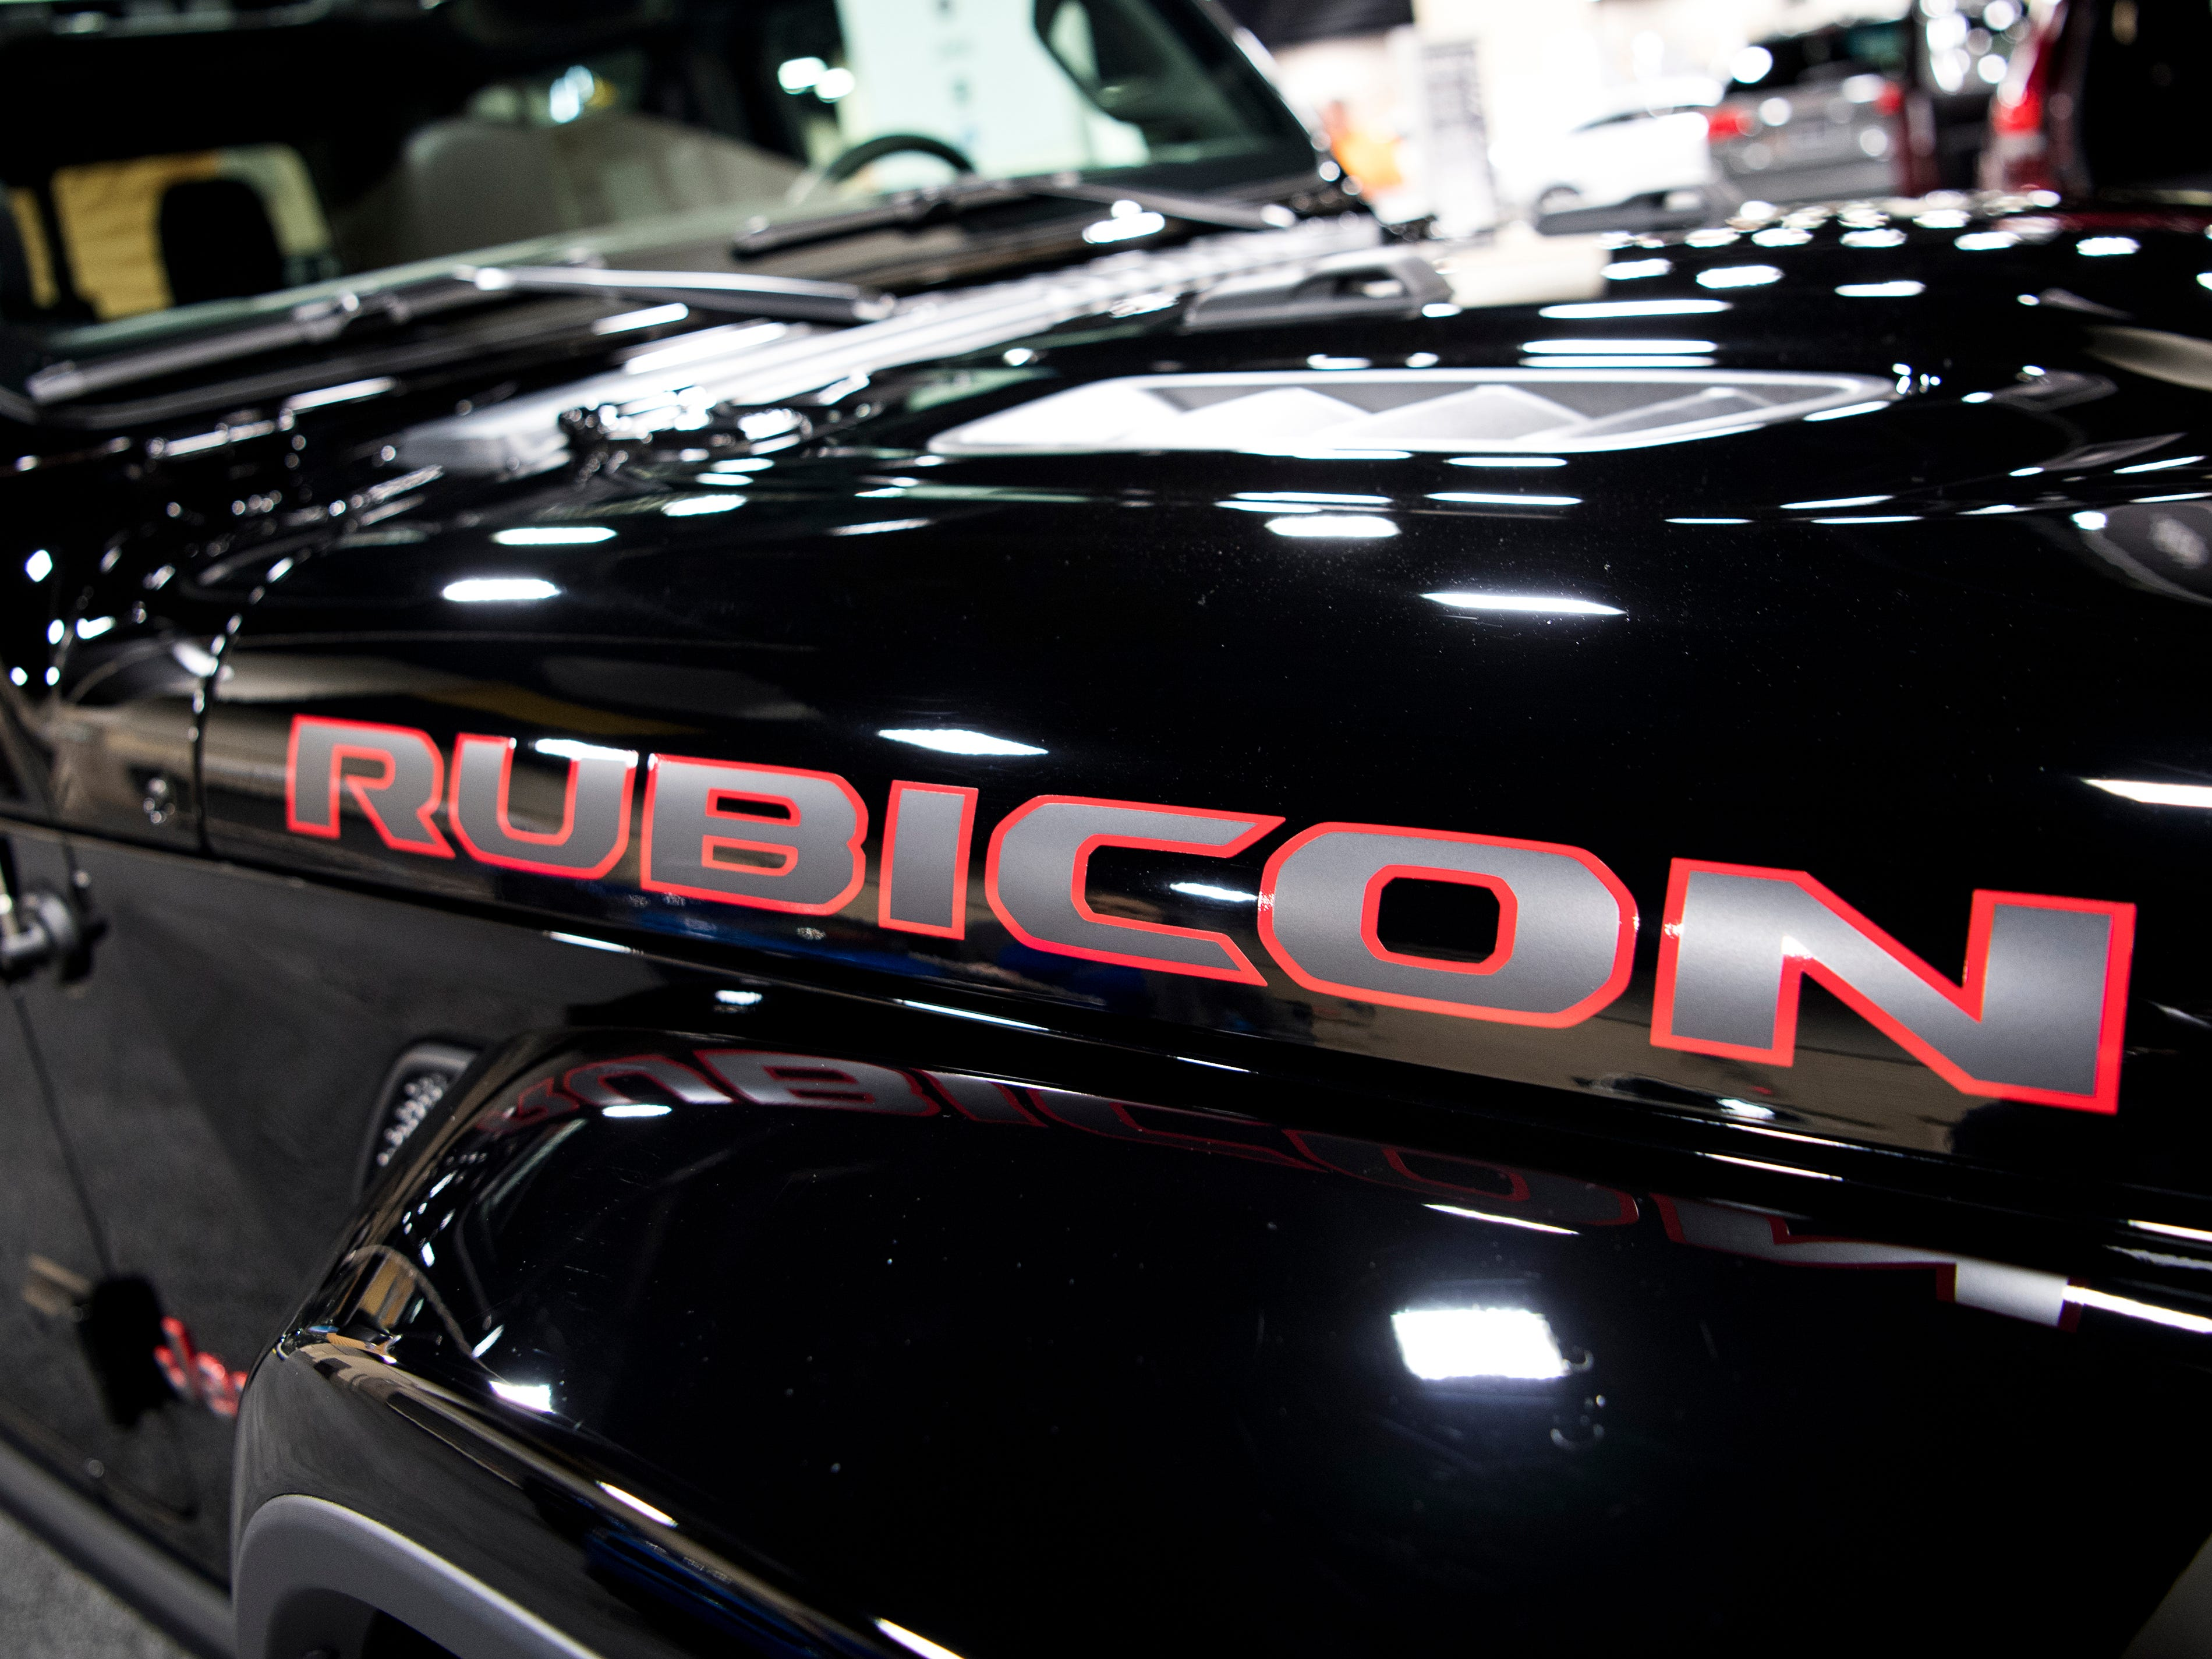 The Jeep Gladiator Rubicon at the Knox News Auto Show held at the Knoxville Convention Center on Friday, February 22, 2019.